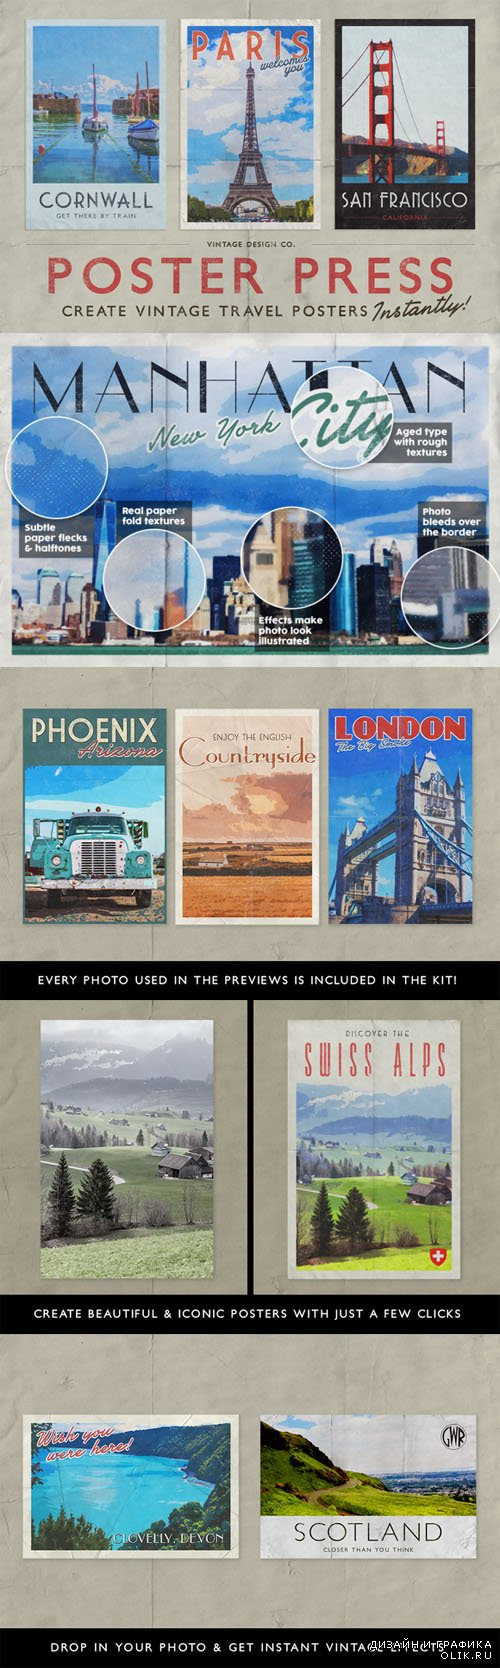 CreativeMarket - PosterPress - Instant Travel Posters 88319